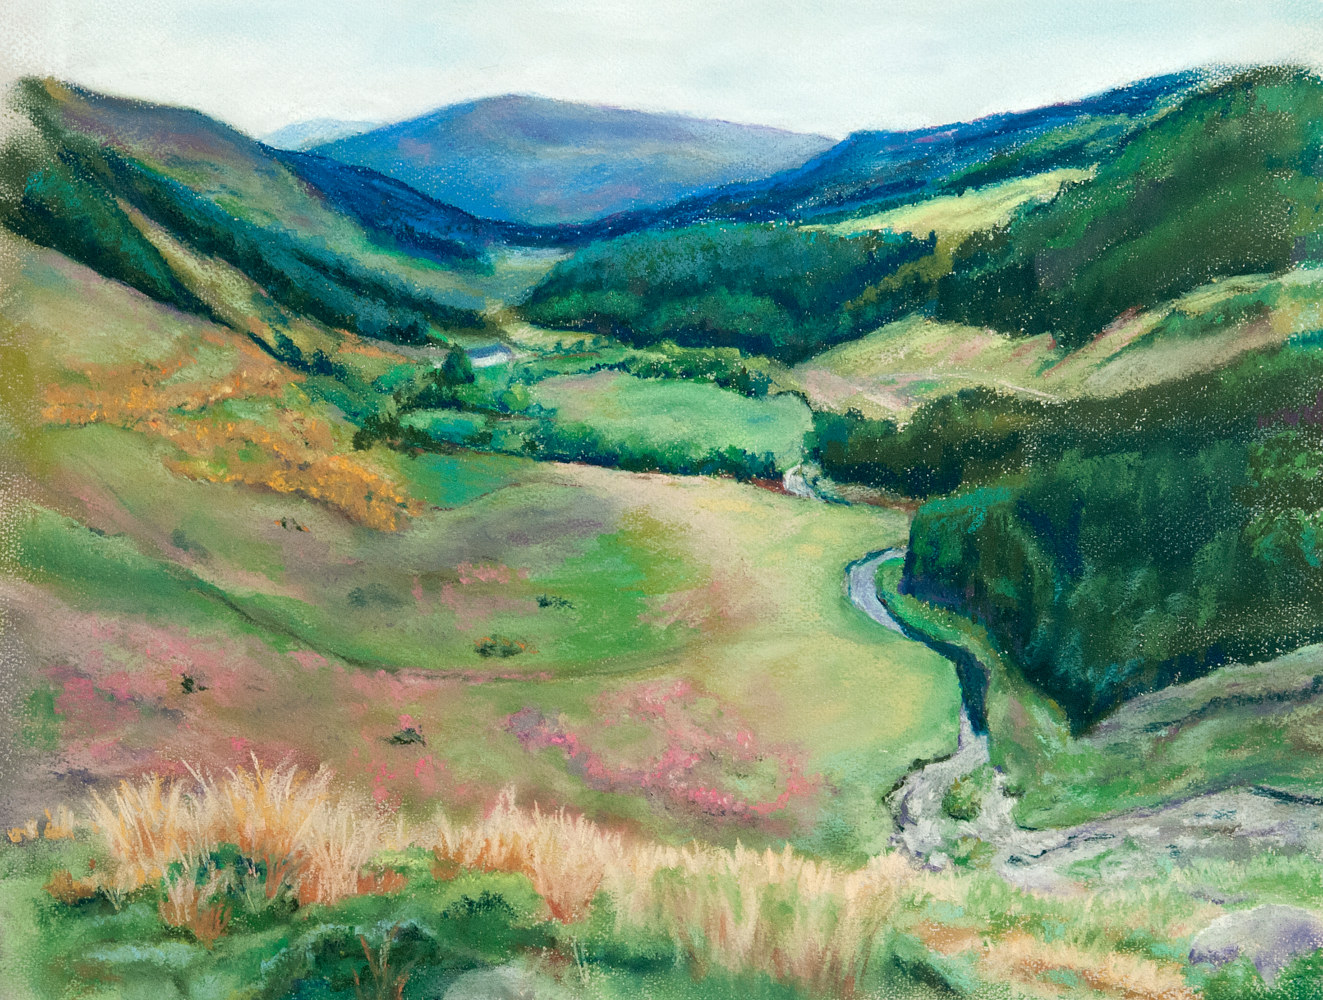 Drawing Sally Gap, Ireland by Kathleen Gross